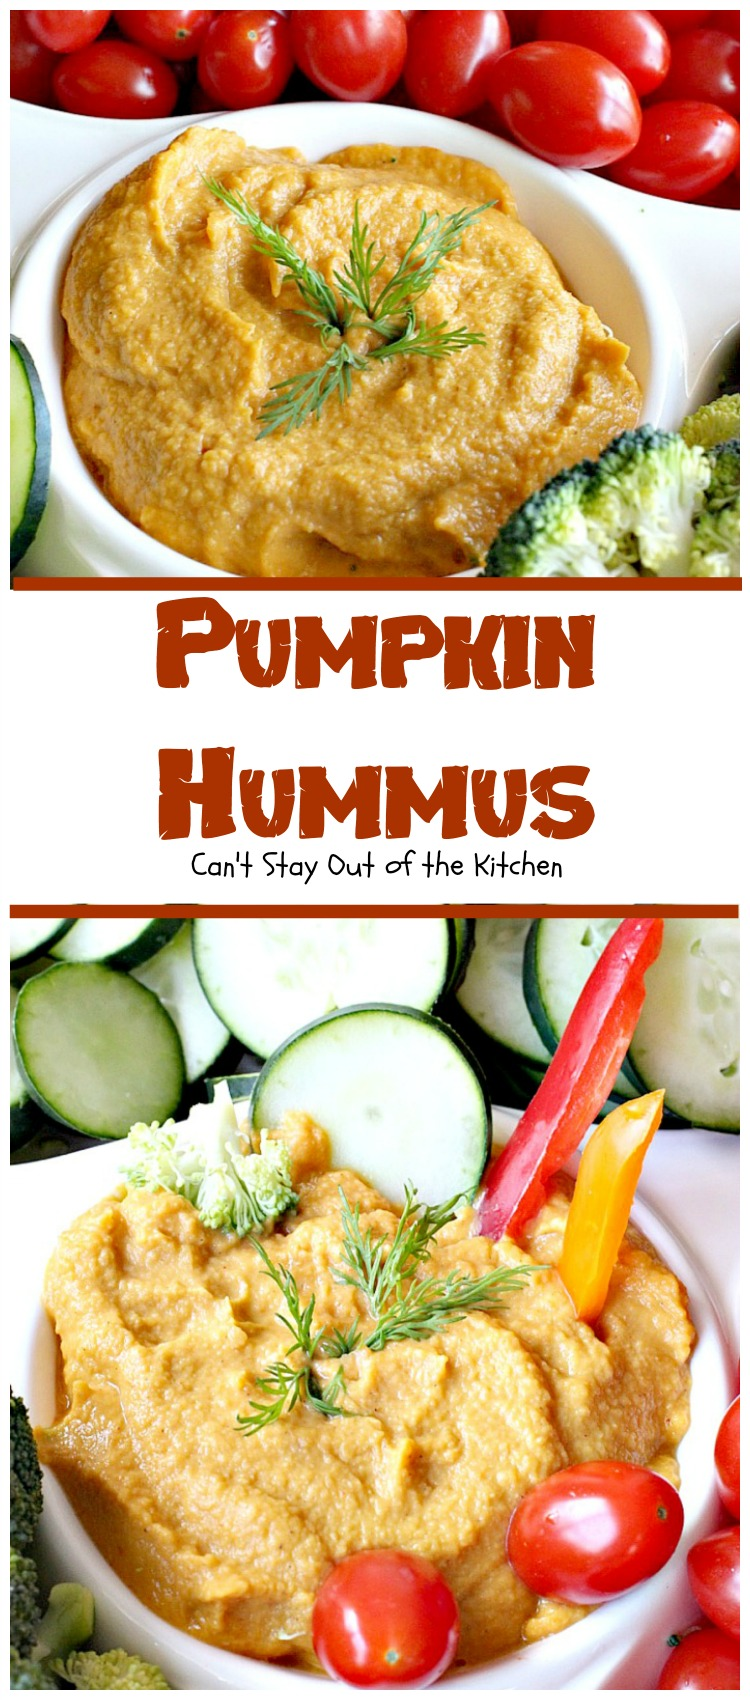 Pumpkin Hummus - Can't Stay Out of the Kitchen